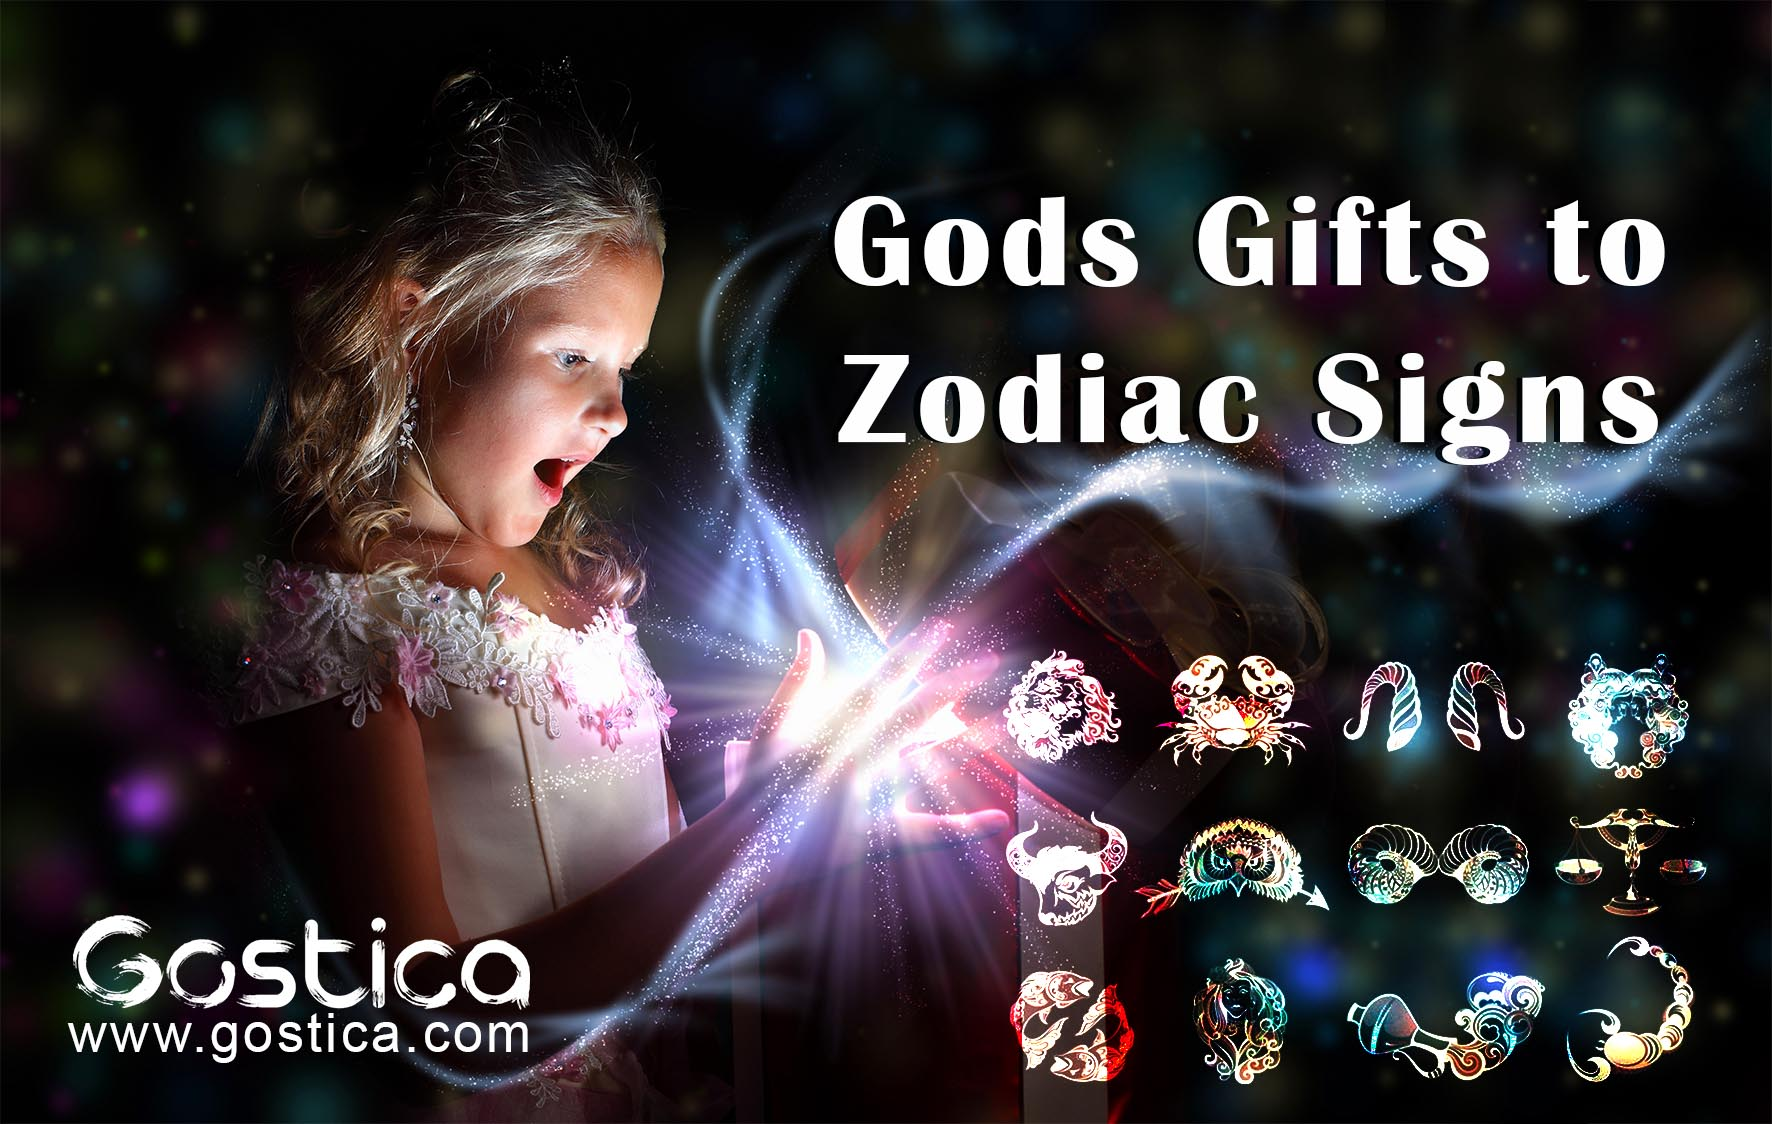 Gods-Gifts-to-Zodiac-Signs.jpg